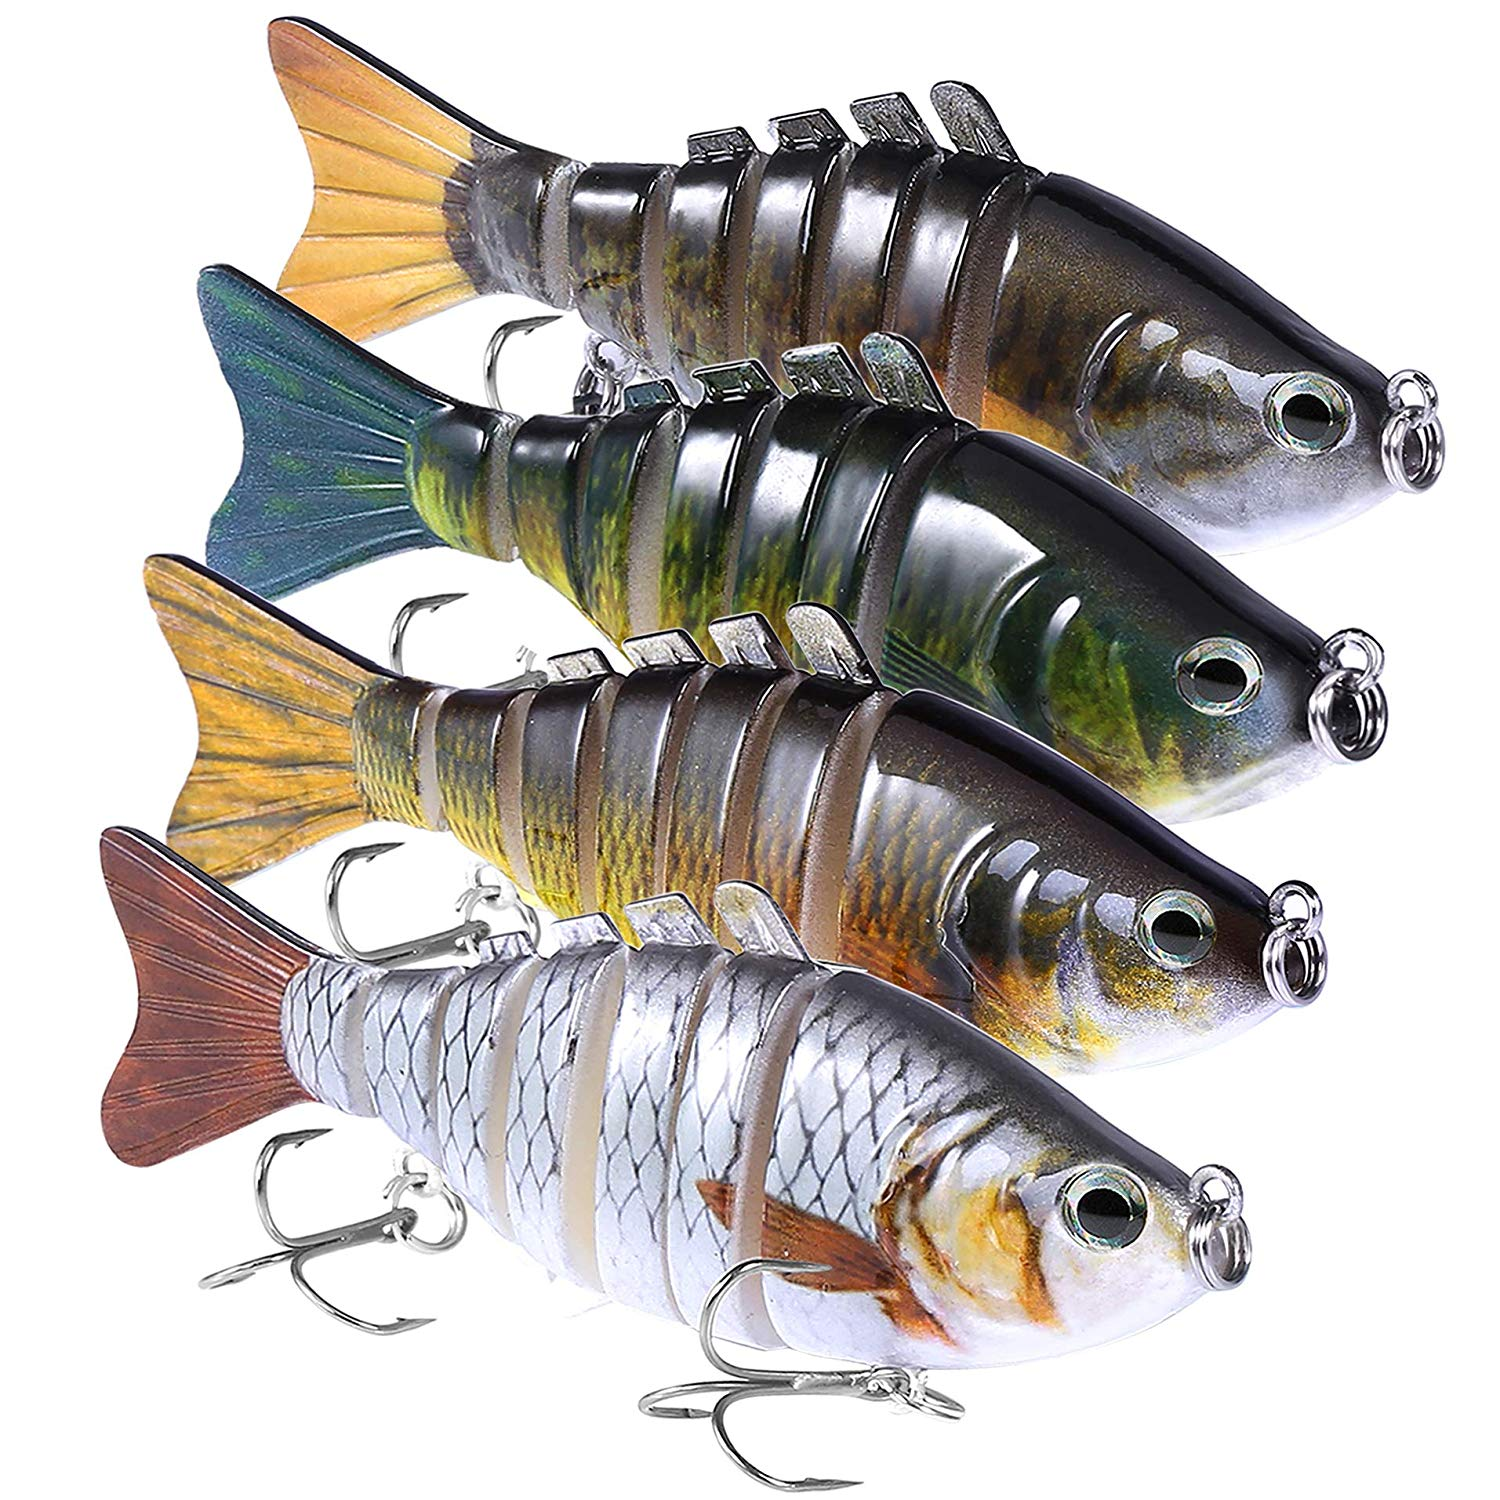 PLUSINNO Fishing Lures for bass, Multi Jointed Trout Swimbaits-4 pack